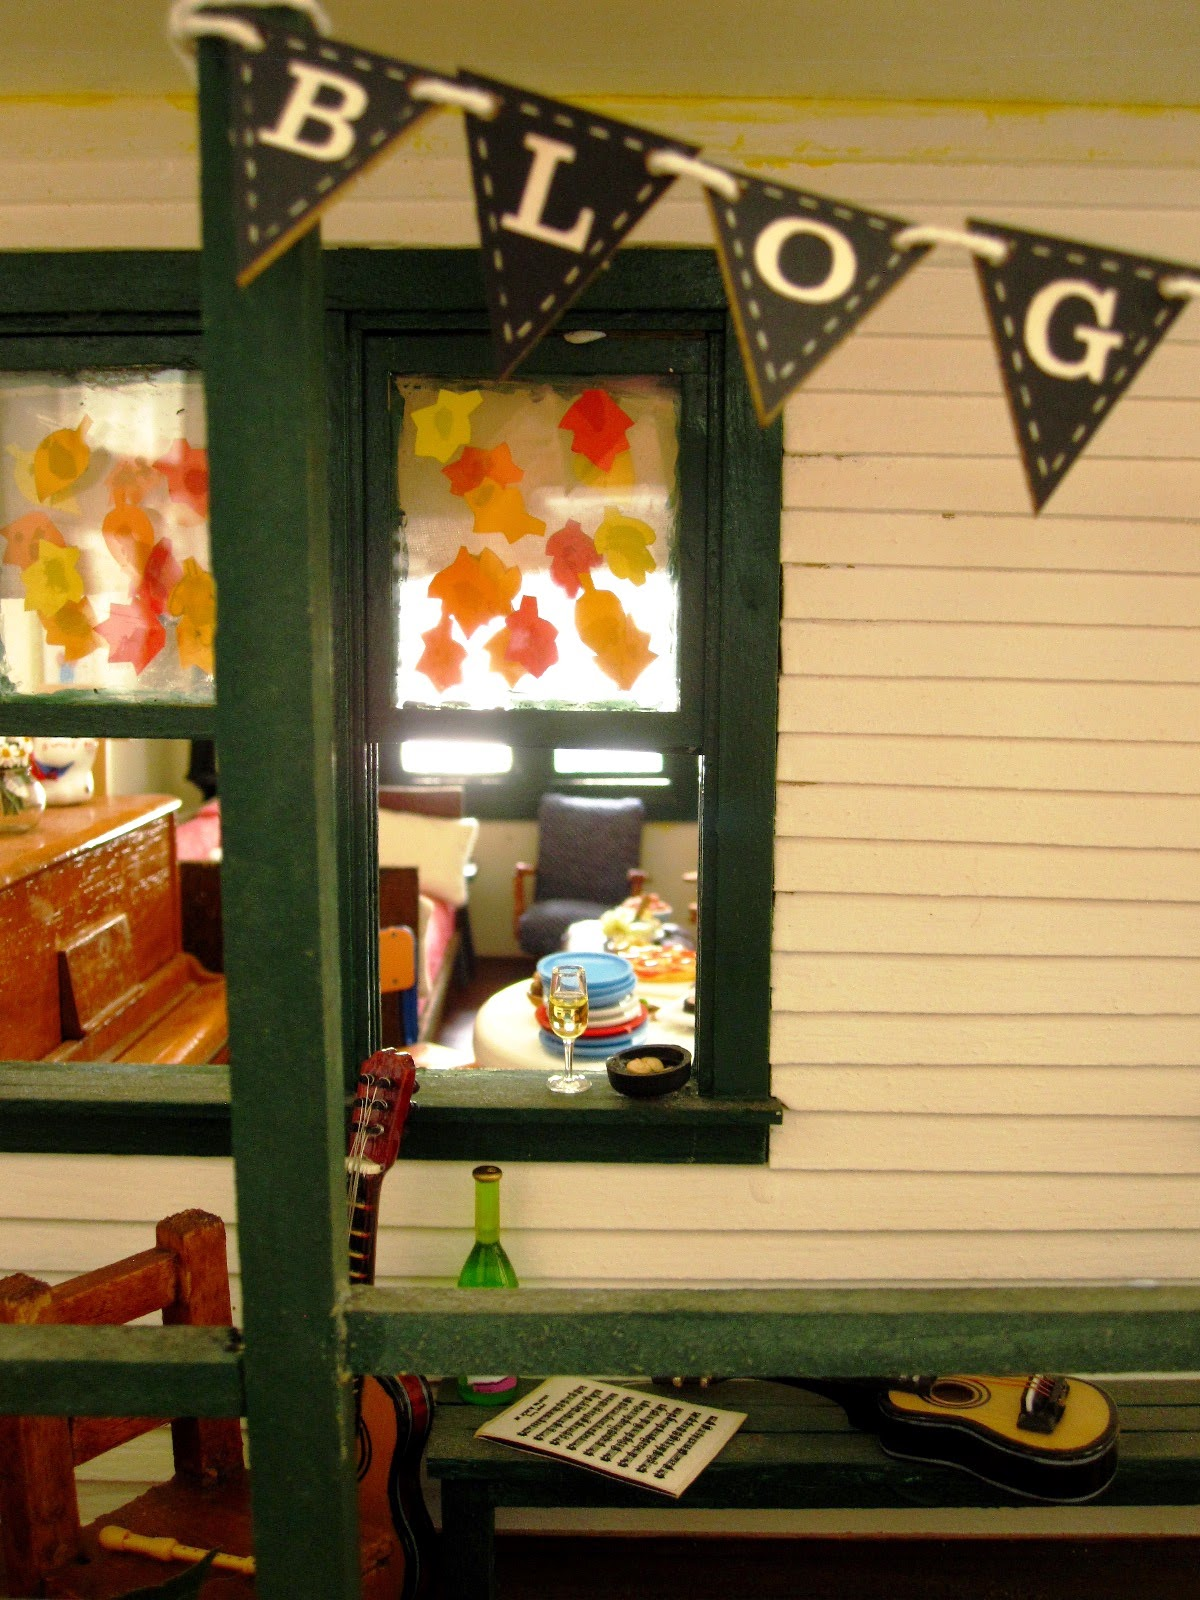 View of a miniature dolls' house veranda with a selection of musical instruments arranged on it. In front, tied to a paost, is bunting reading 'blog'.